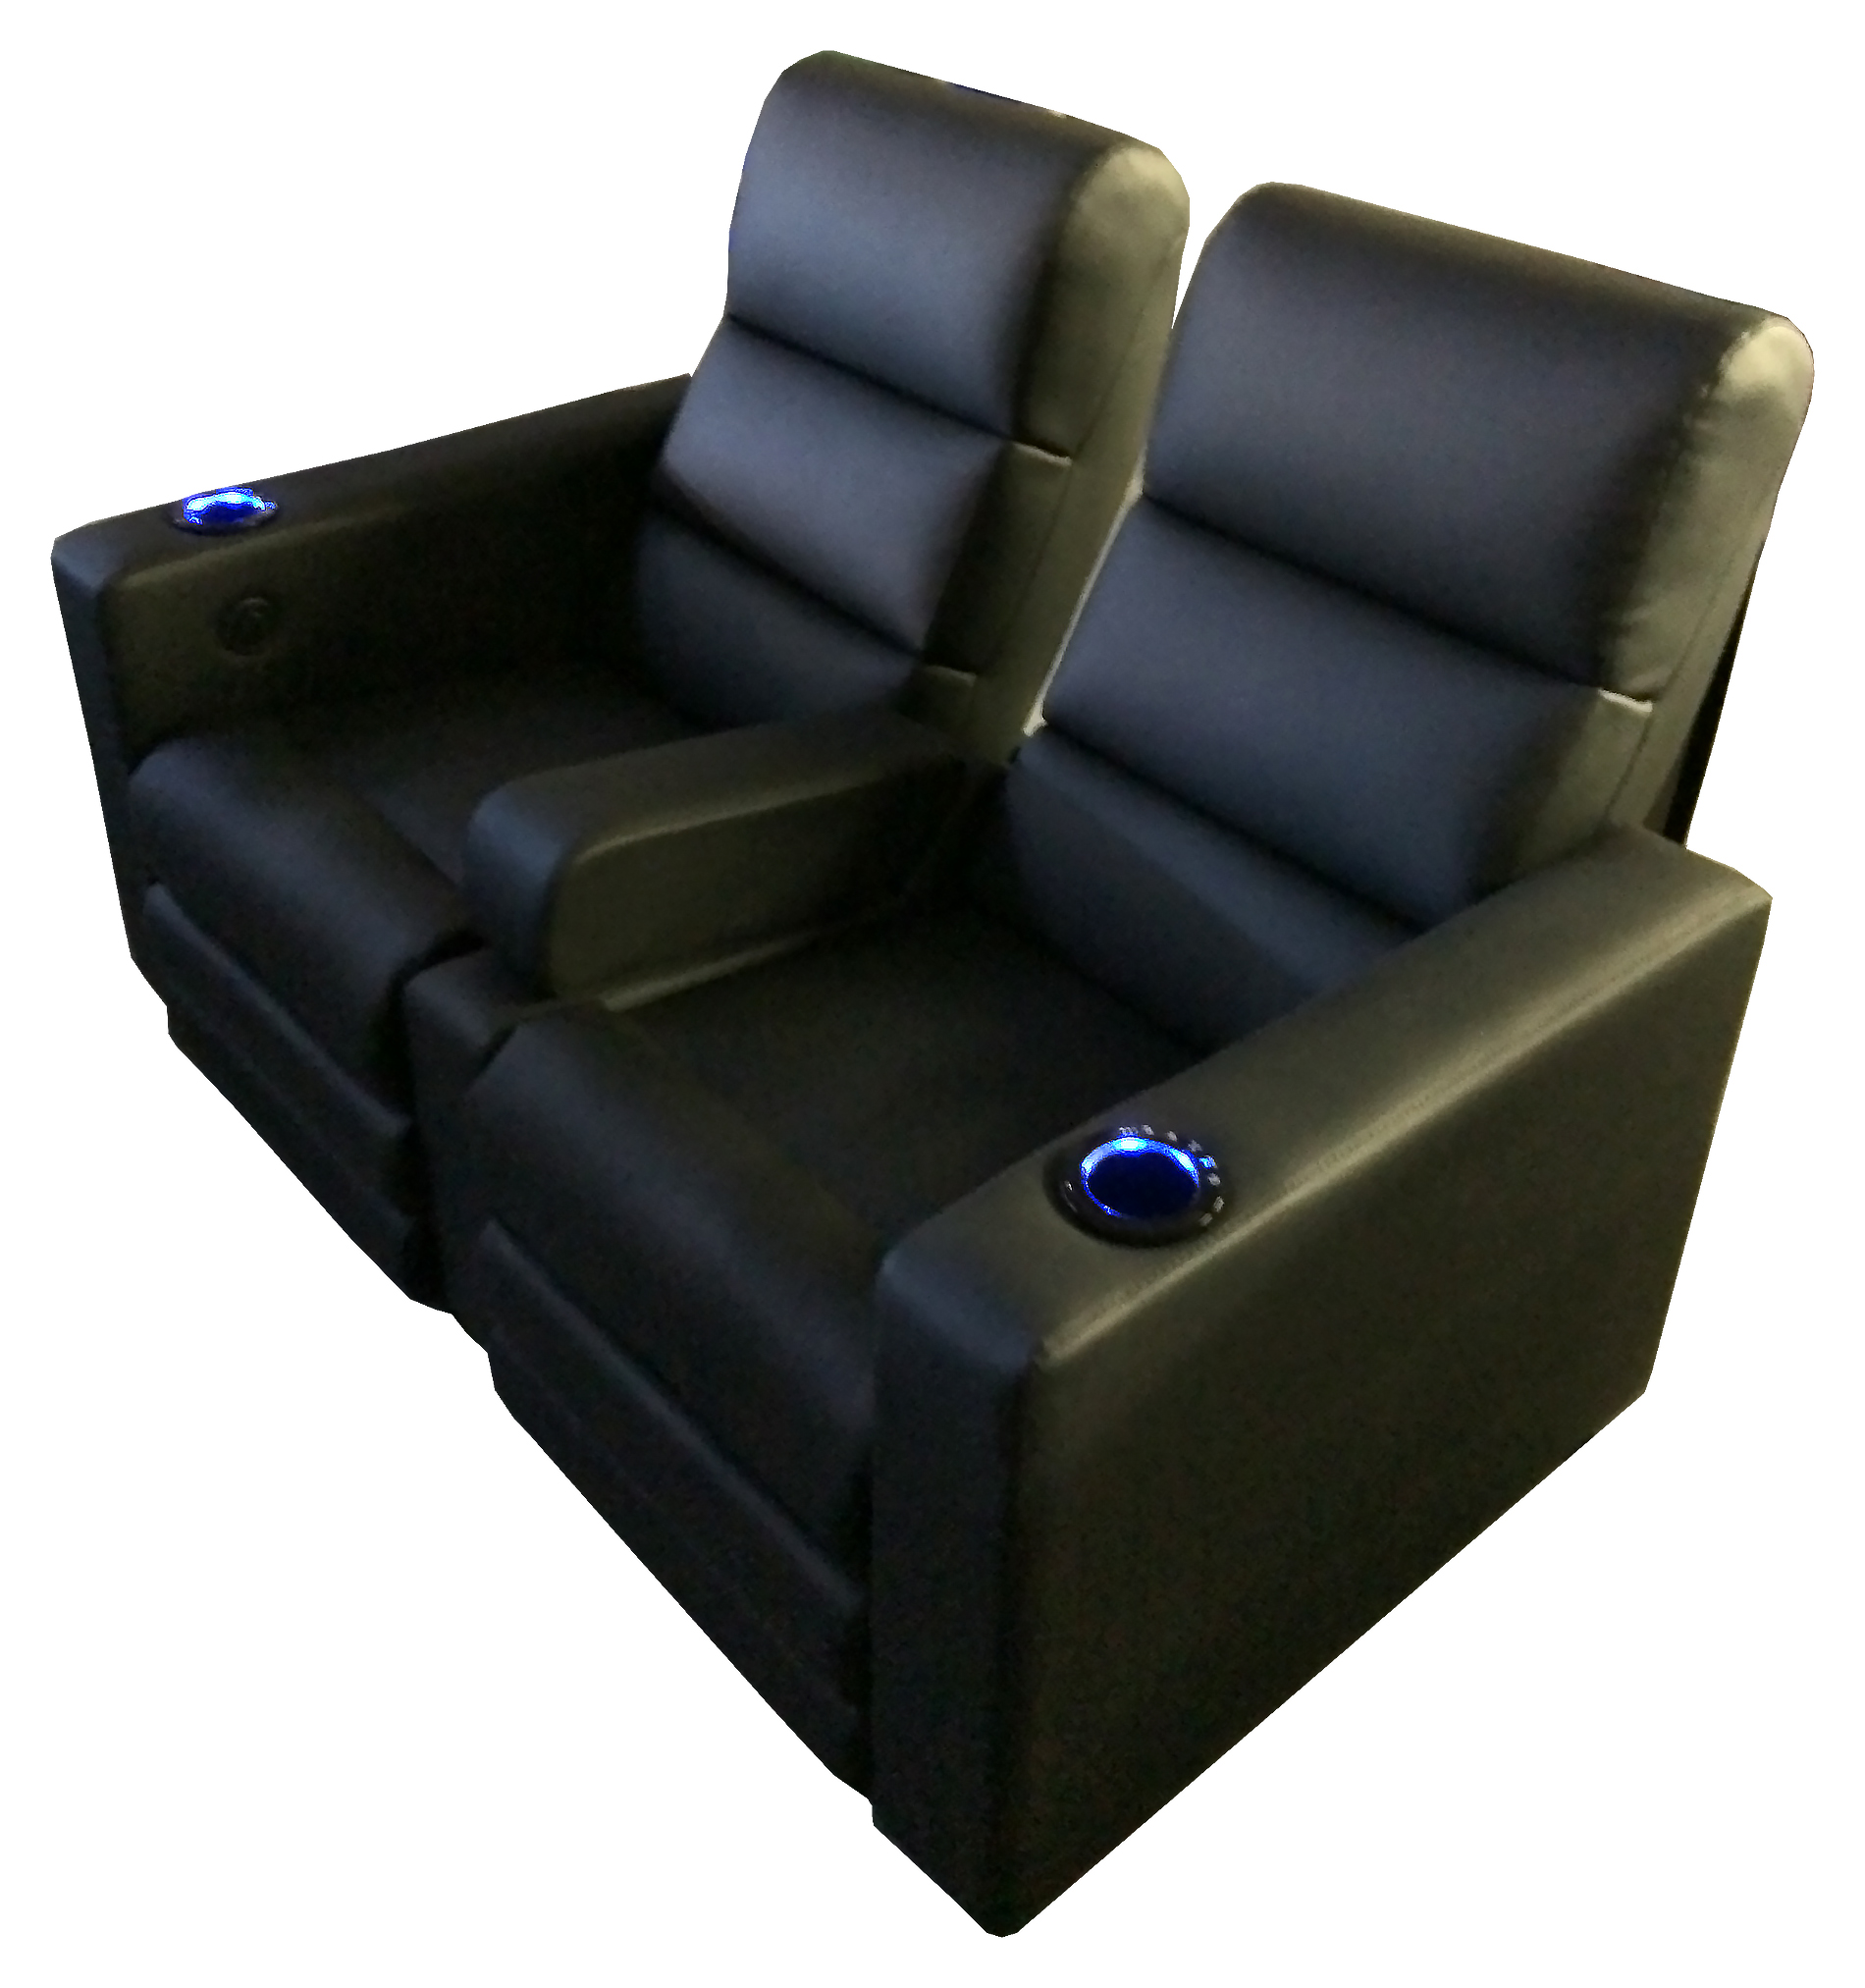 New Home Theater Seats Want To Add To Your Movie Watching Experience